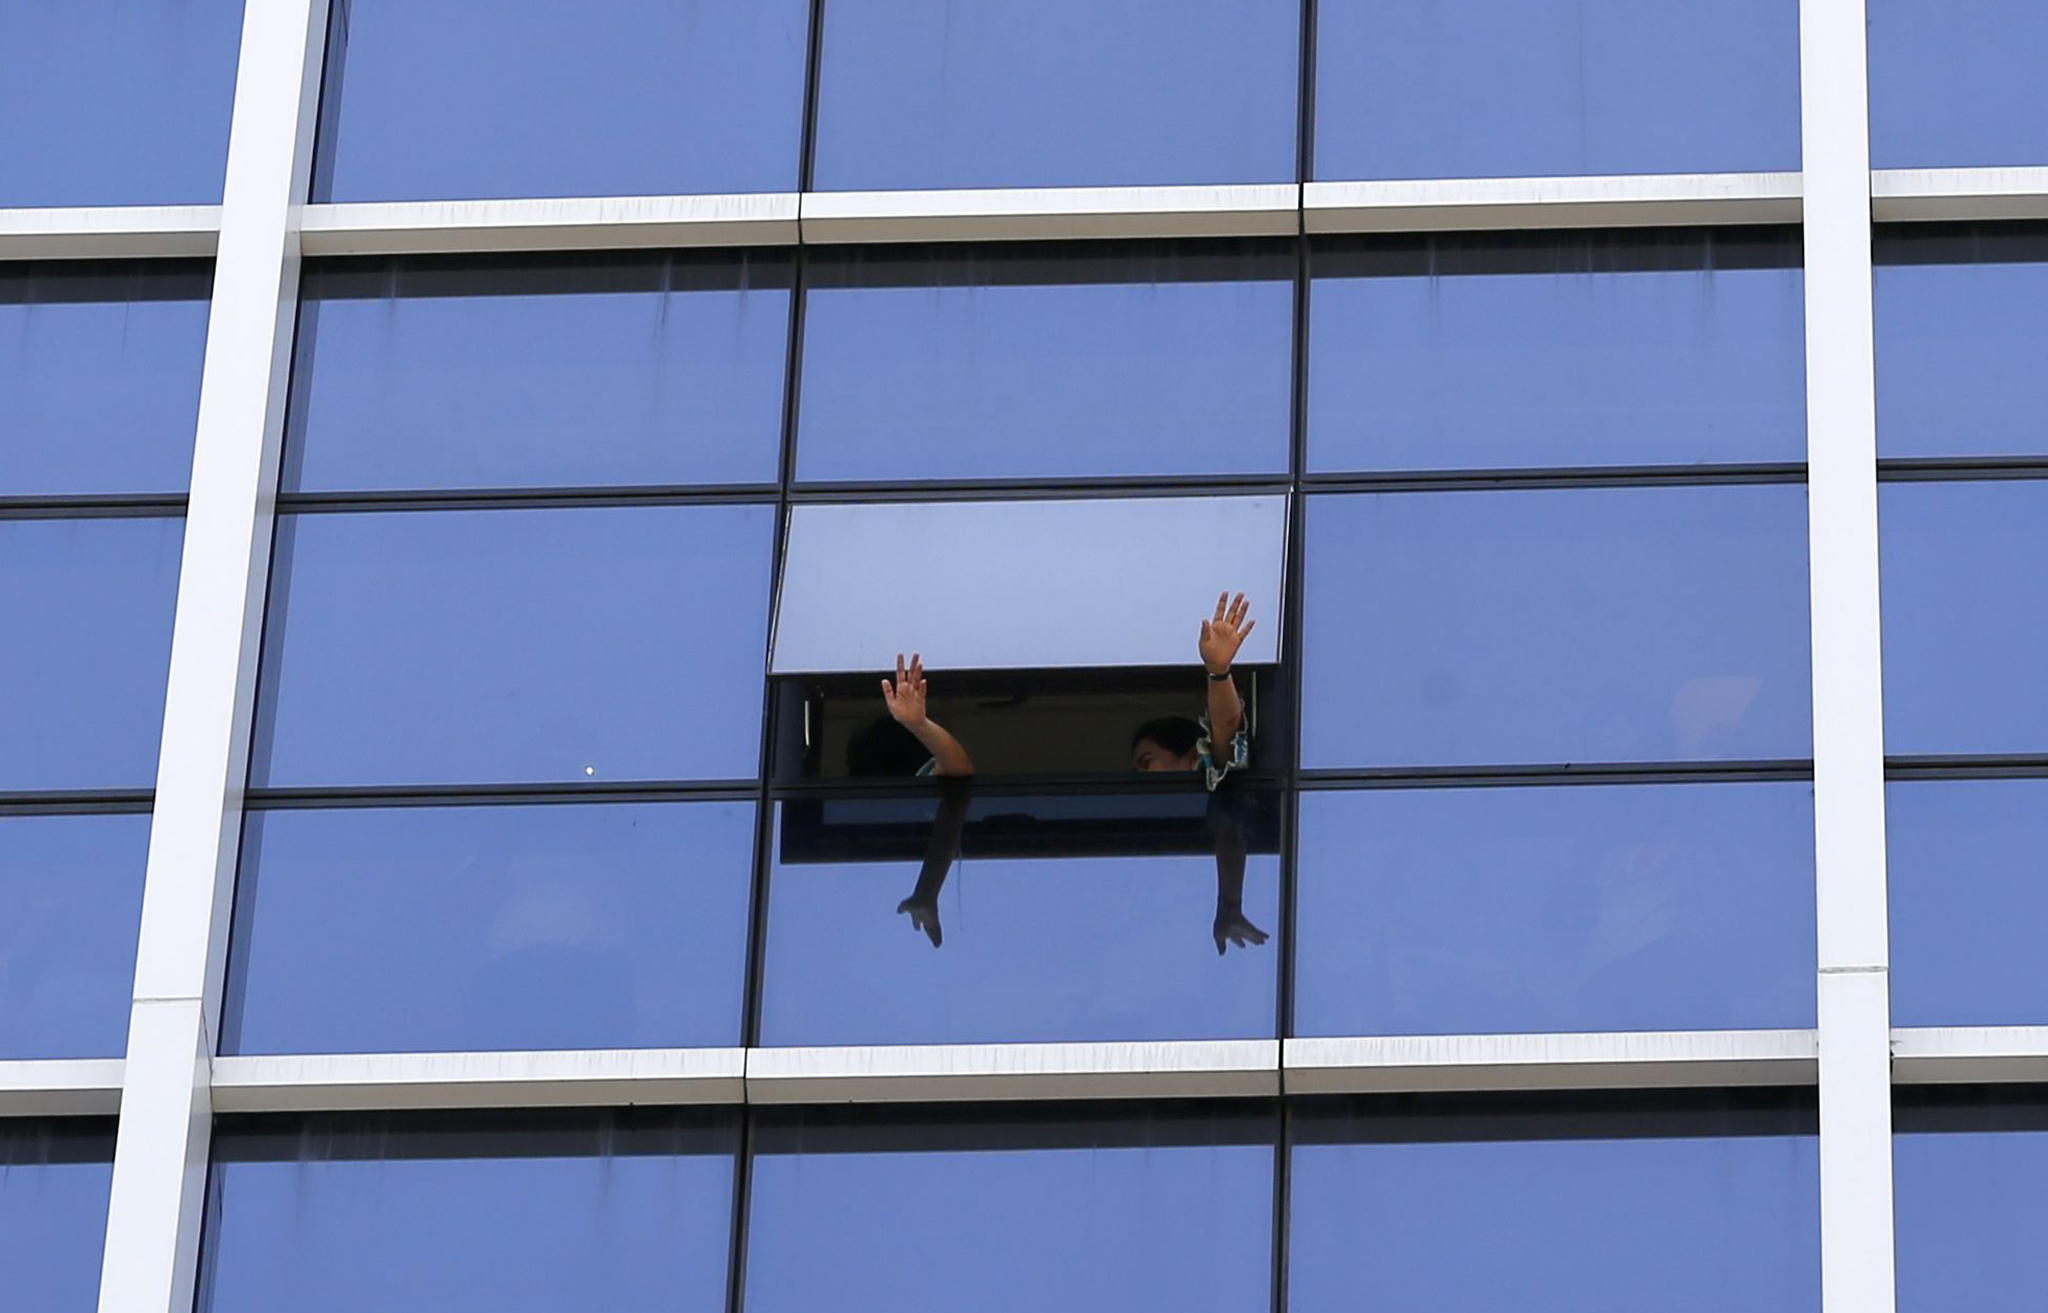 Anti-government protests in Bangkok...epa04202242 Thai office workers wave to cheer anti-government protesters from the window of a building during a street rally in Bangkok, Thailand, 12 May 2014. Anti-government protesters began moving their rally site in central Bangkok to the area surrounding parliament hoping to pressure the Senate to appoint an interim government to institute reforms before new elections while key Thai institutions are resisting opposition demands to install an appointed government to make political reforms, reports said.  EPA/RUNGROJ YONGRIT